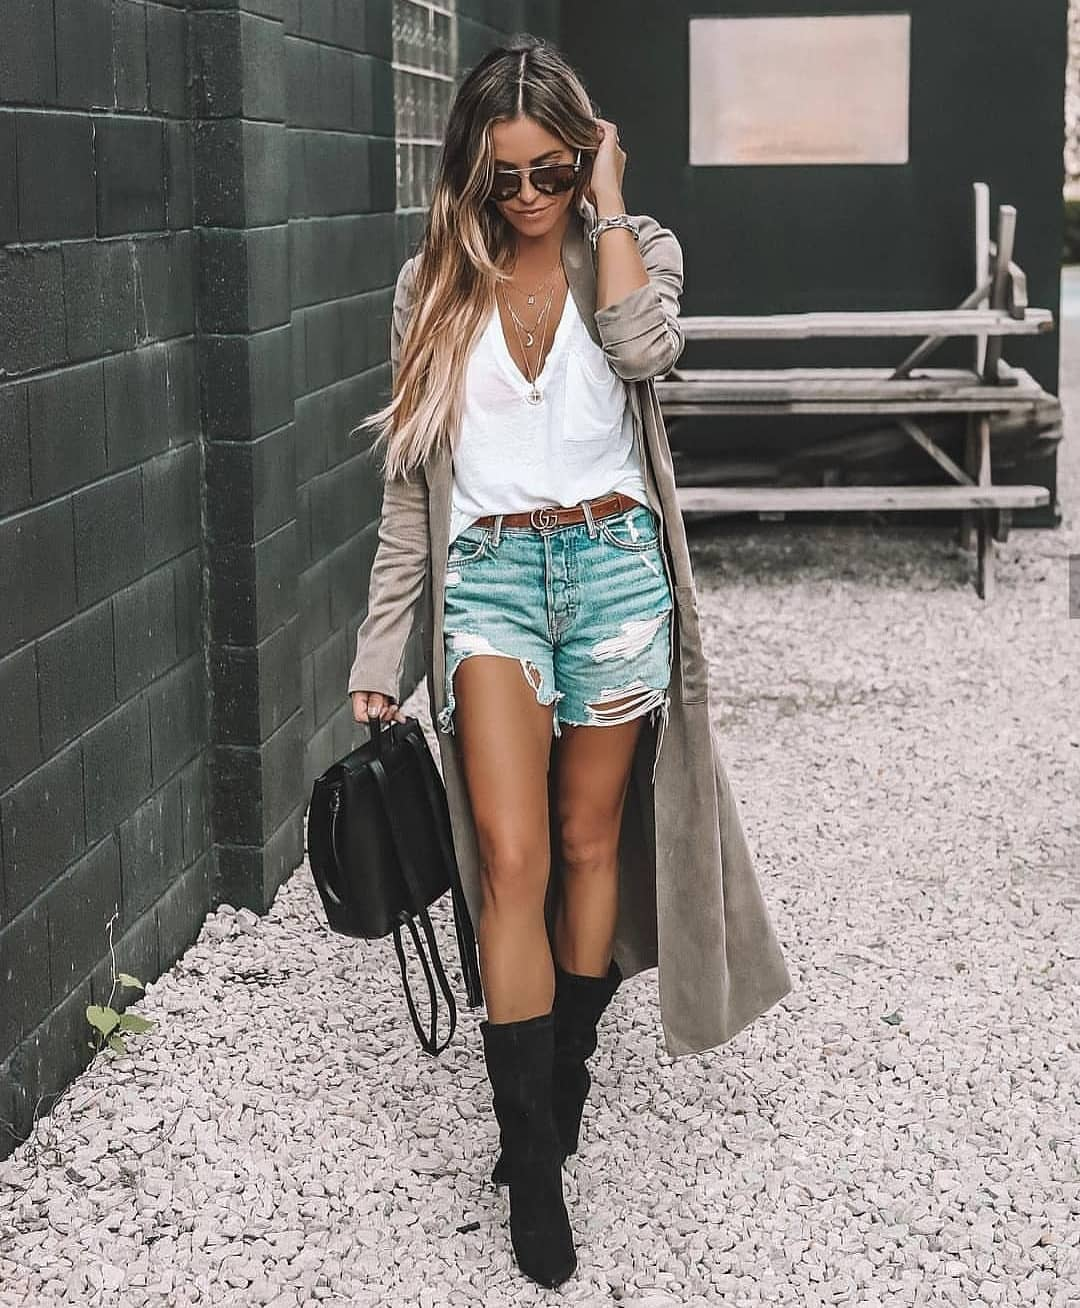 Light Grey Maxi Coat With Ripped Blue Denim Shorts And Black Boots For Spring 2019